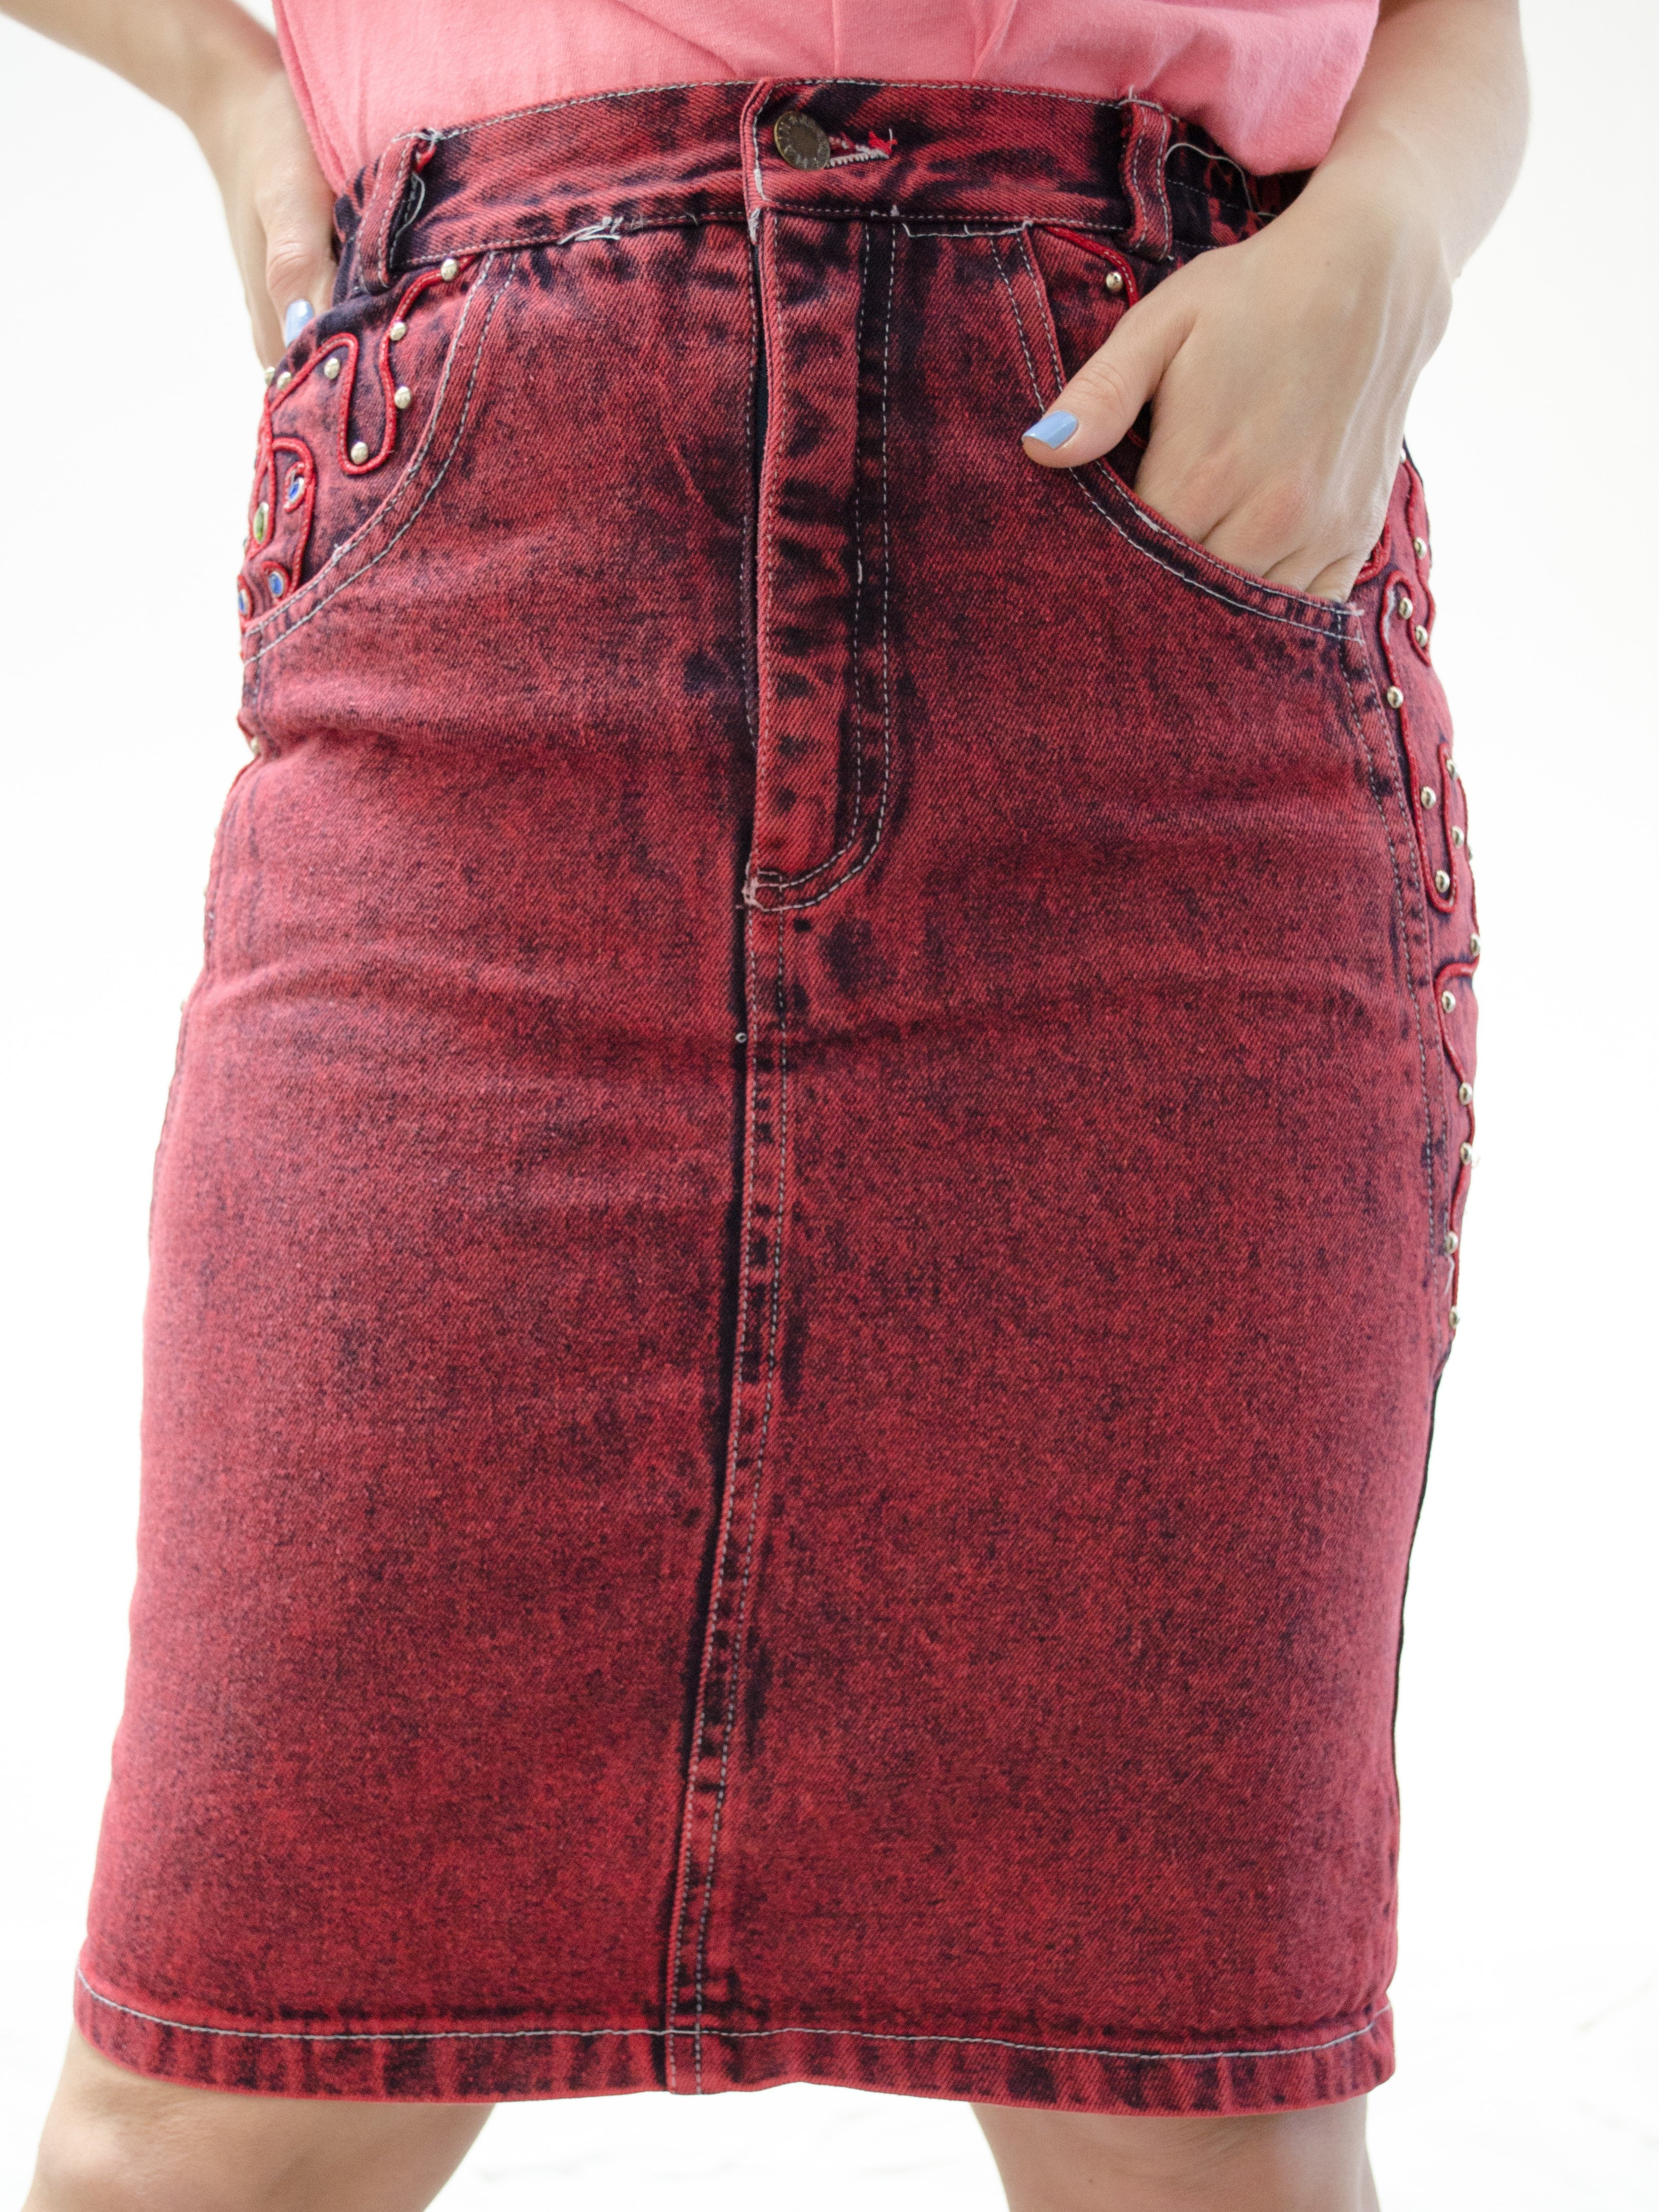 Vintage 80s Embellished Red Denim Skirt by Main Jeans / S-M